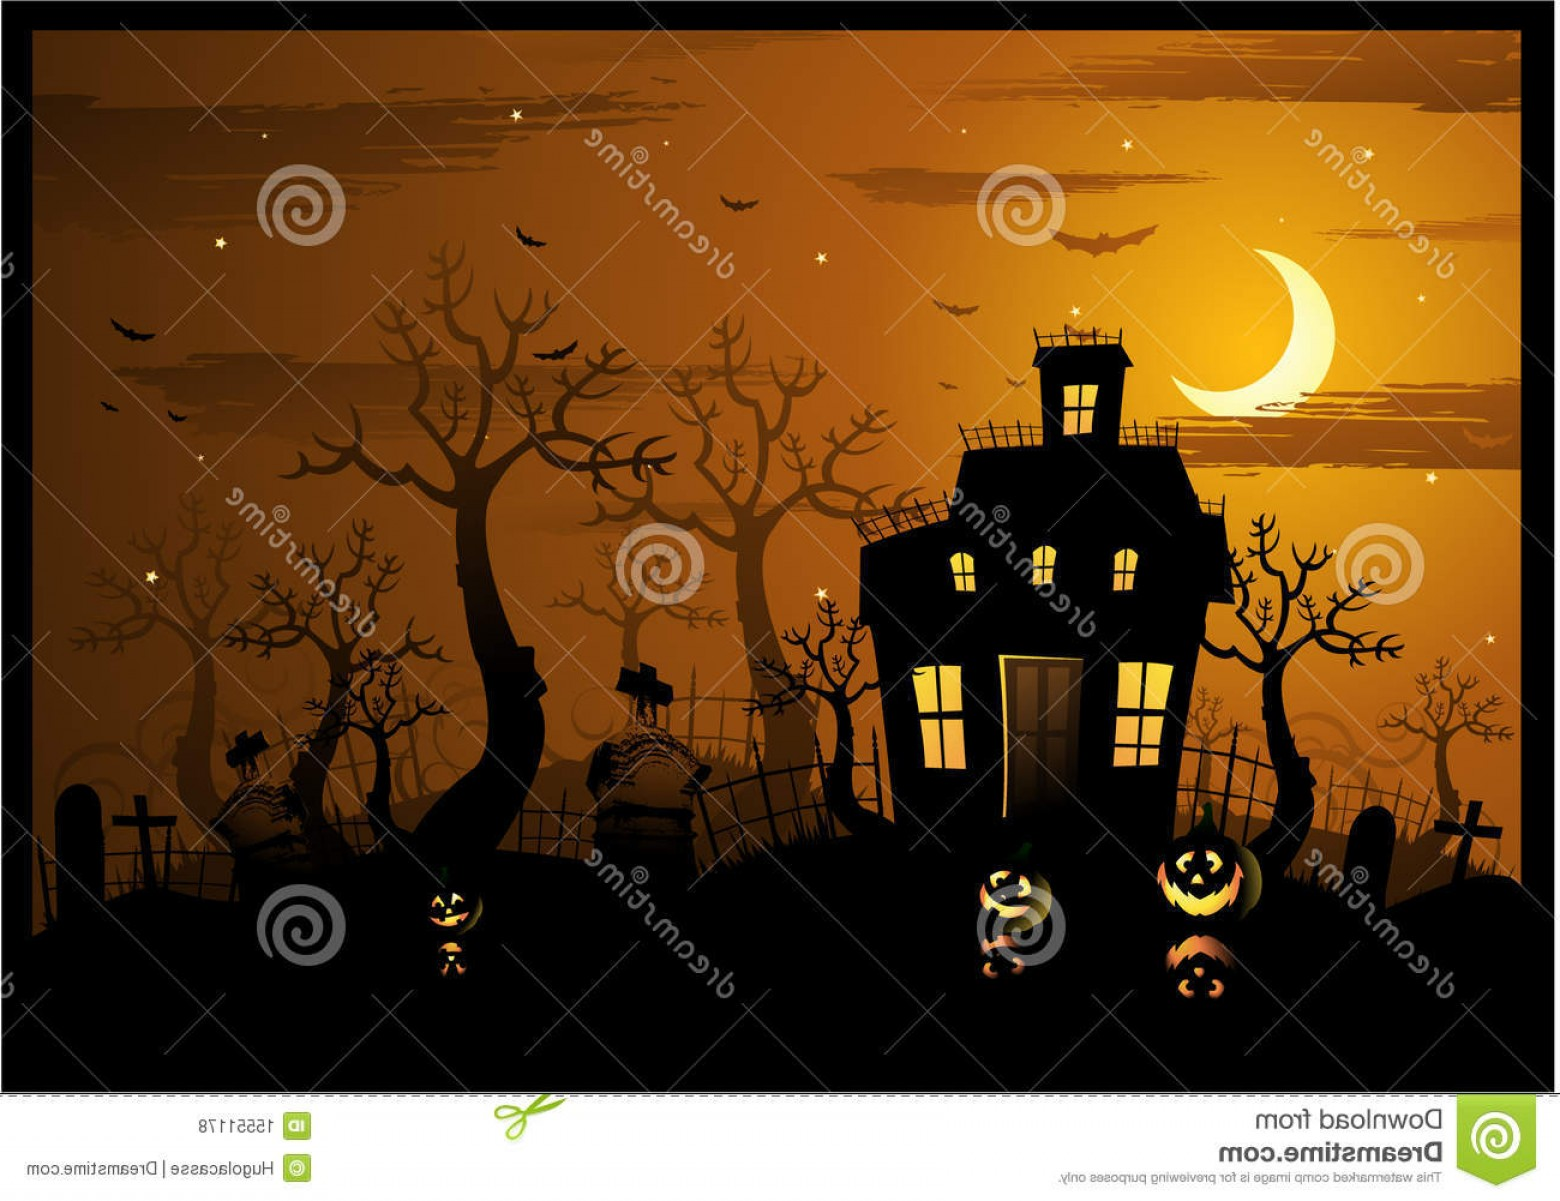 Halloween Haunted House Silhouette Vector: Royalty Free Stock Photos Halloween Haunted House Background Image